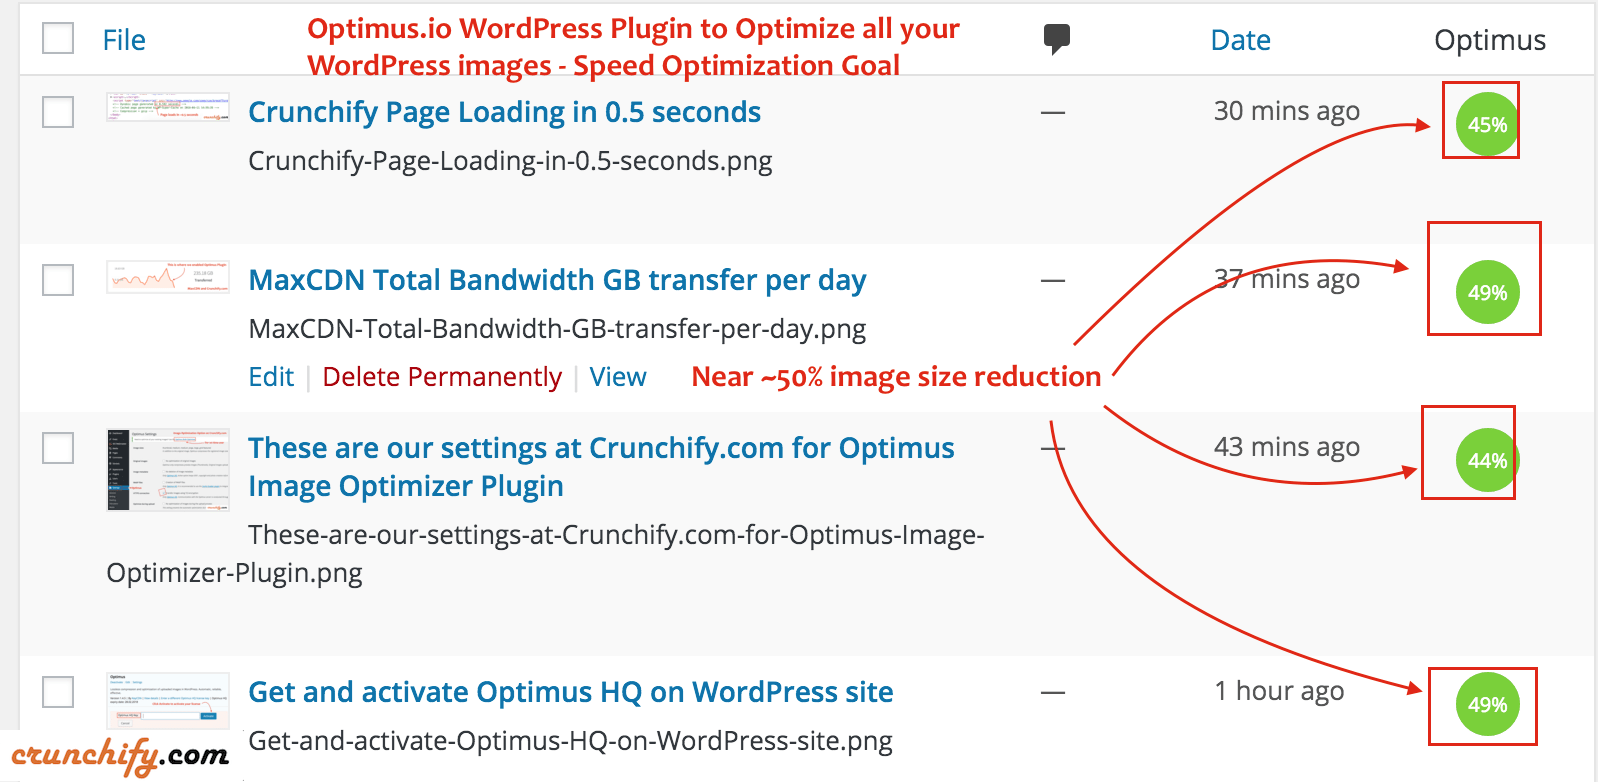 Optimus WordPress Plugin to Optimize all your WordPress images - Speed Optimization Goal